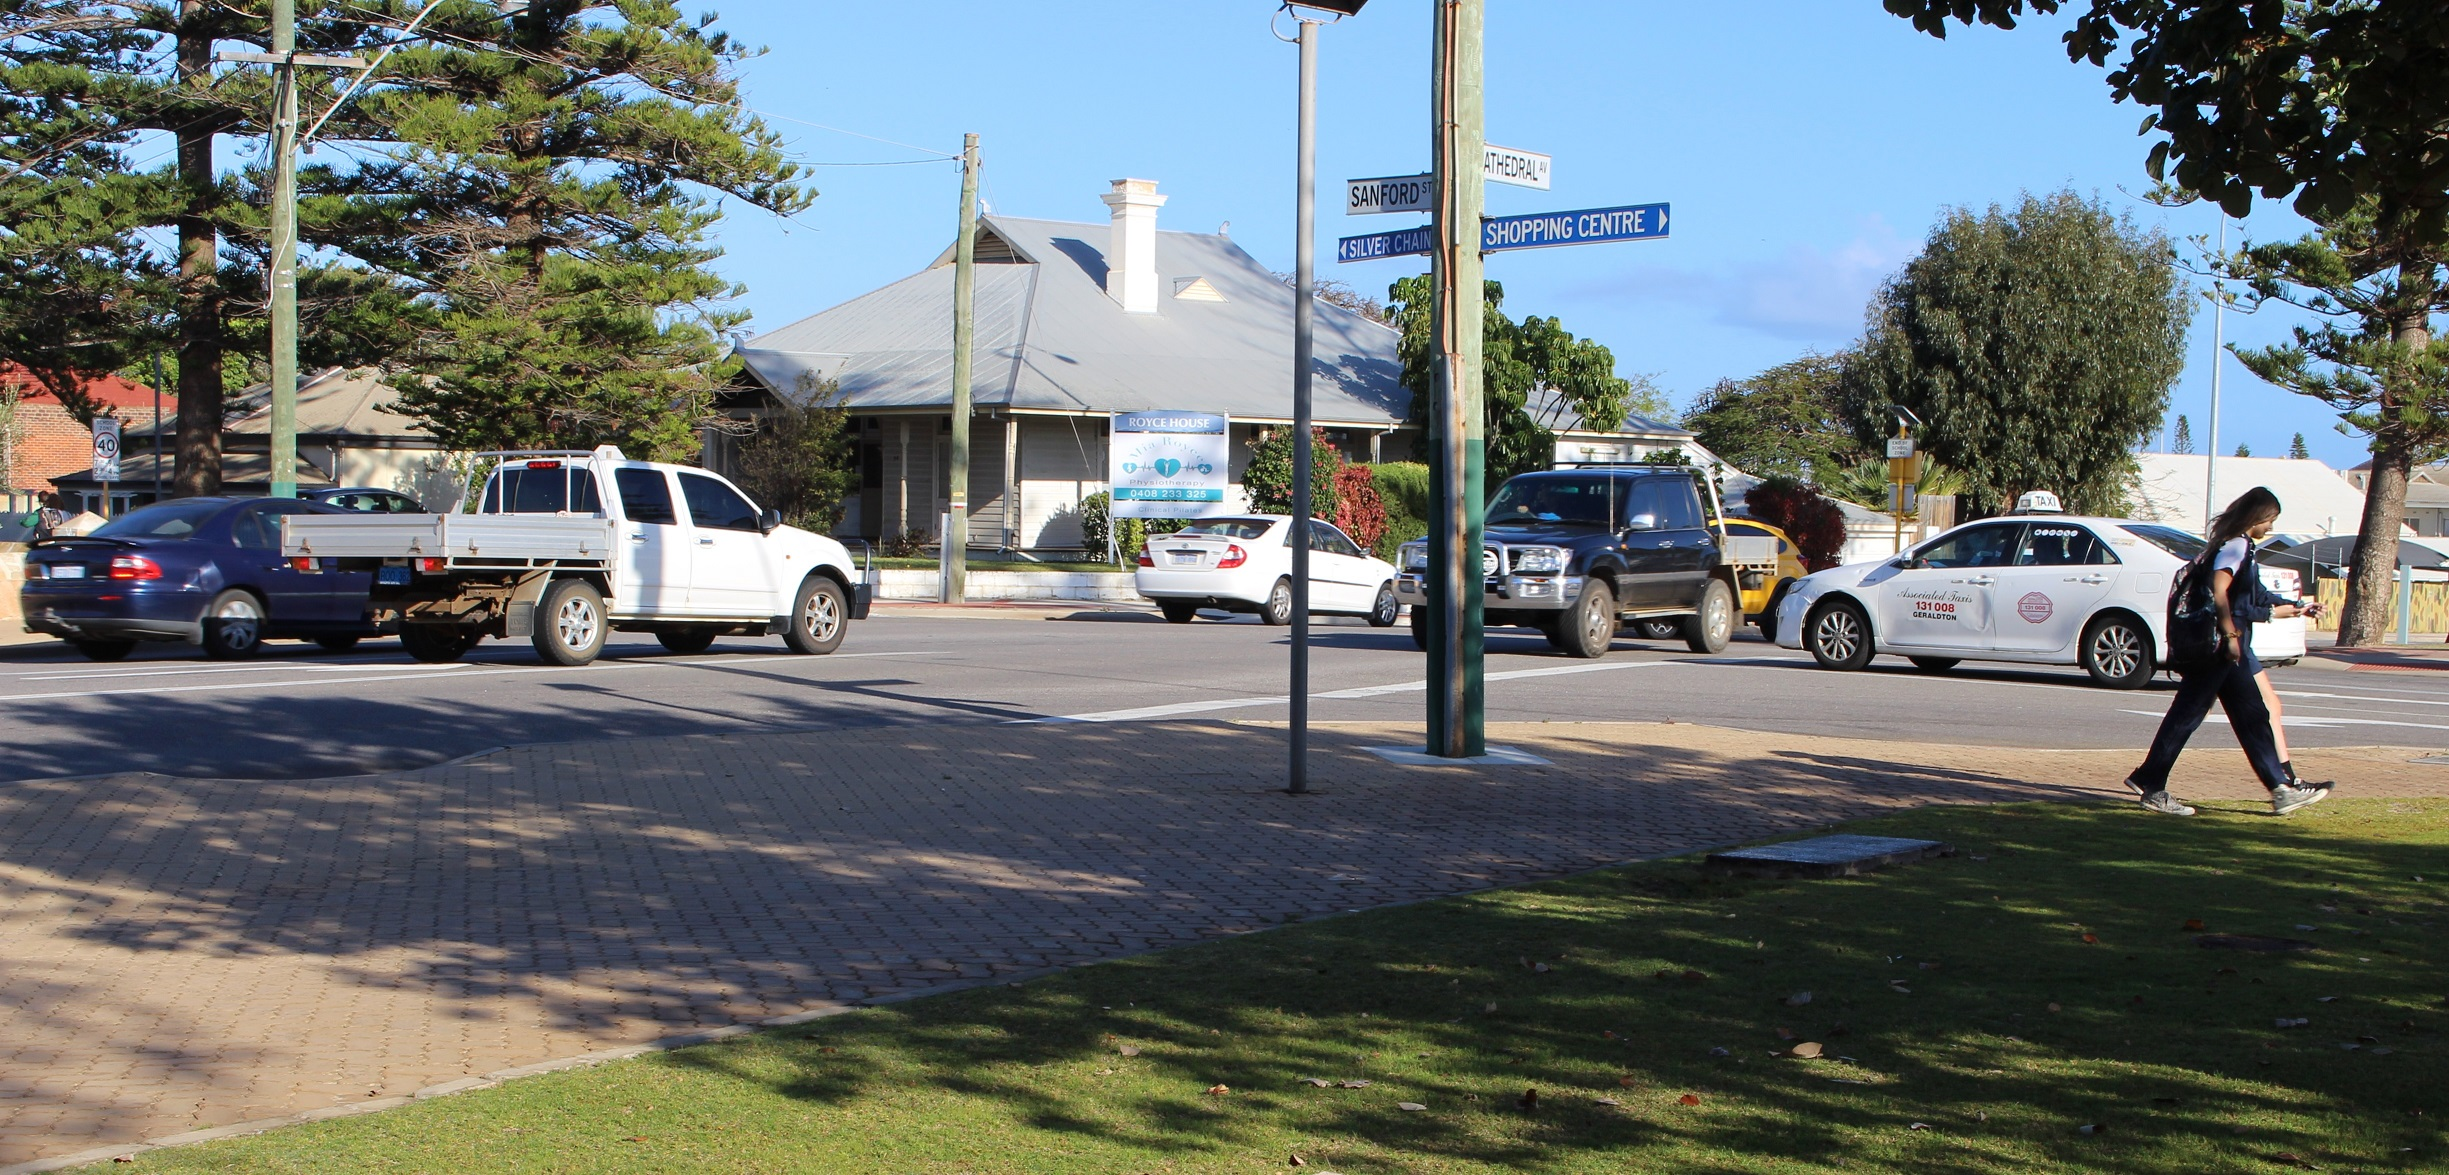 Early morning traffic congestion at the intersection of Cathedral Avenue and Sandford Street.